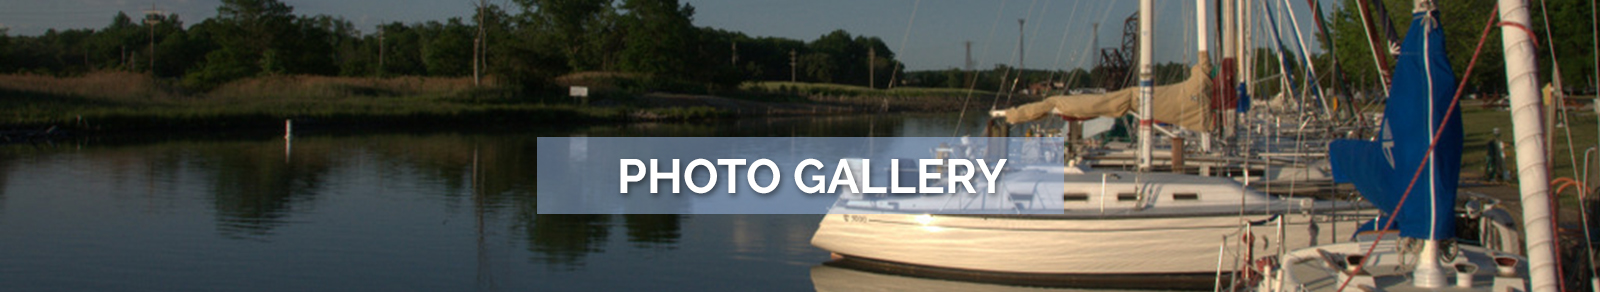 Ashtabula Yacht Club Photo Gallery